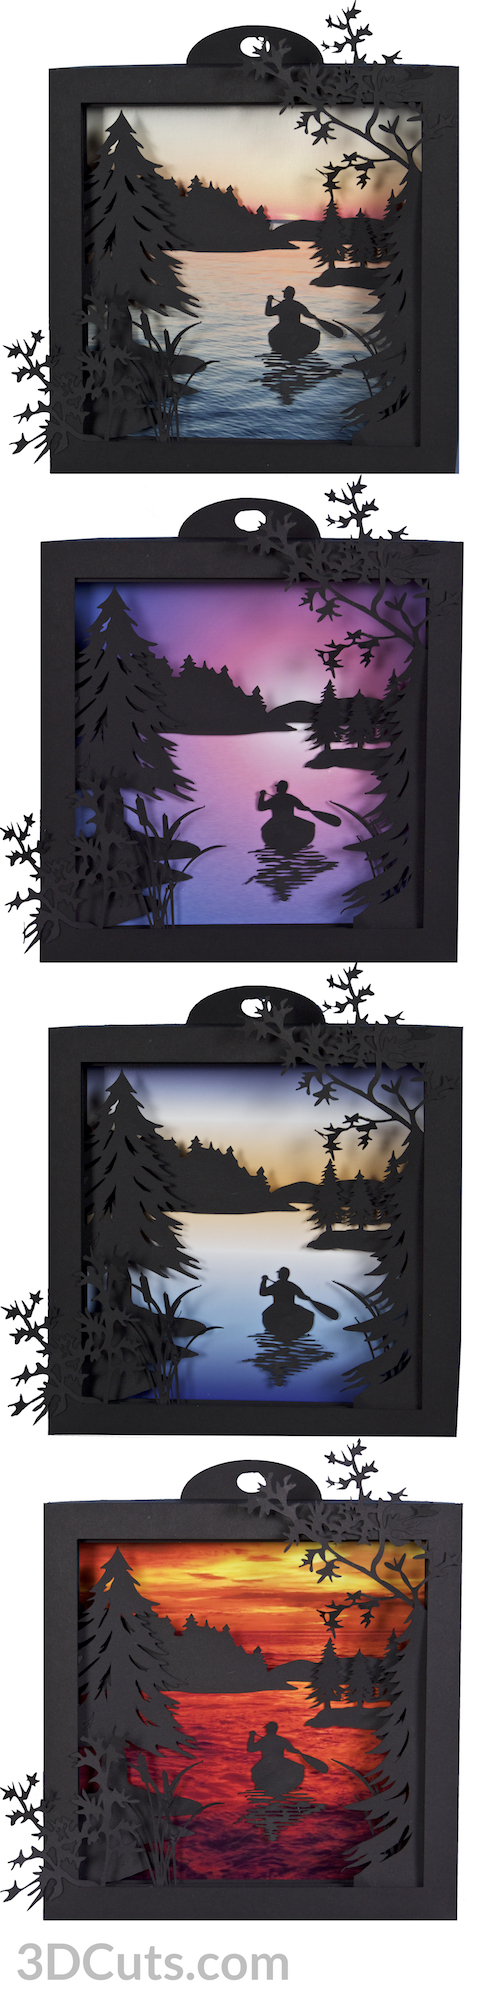 Canoe at Sunrise Shadow Box in paper by Marji Roy of 3dcuts.com. Cutting files in svg, pdf, and dxf formats for Silhouette and Cricut cutting machines